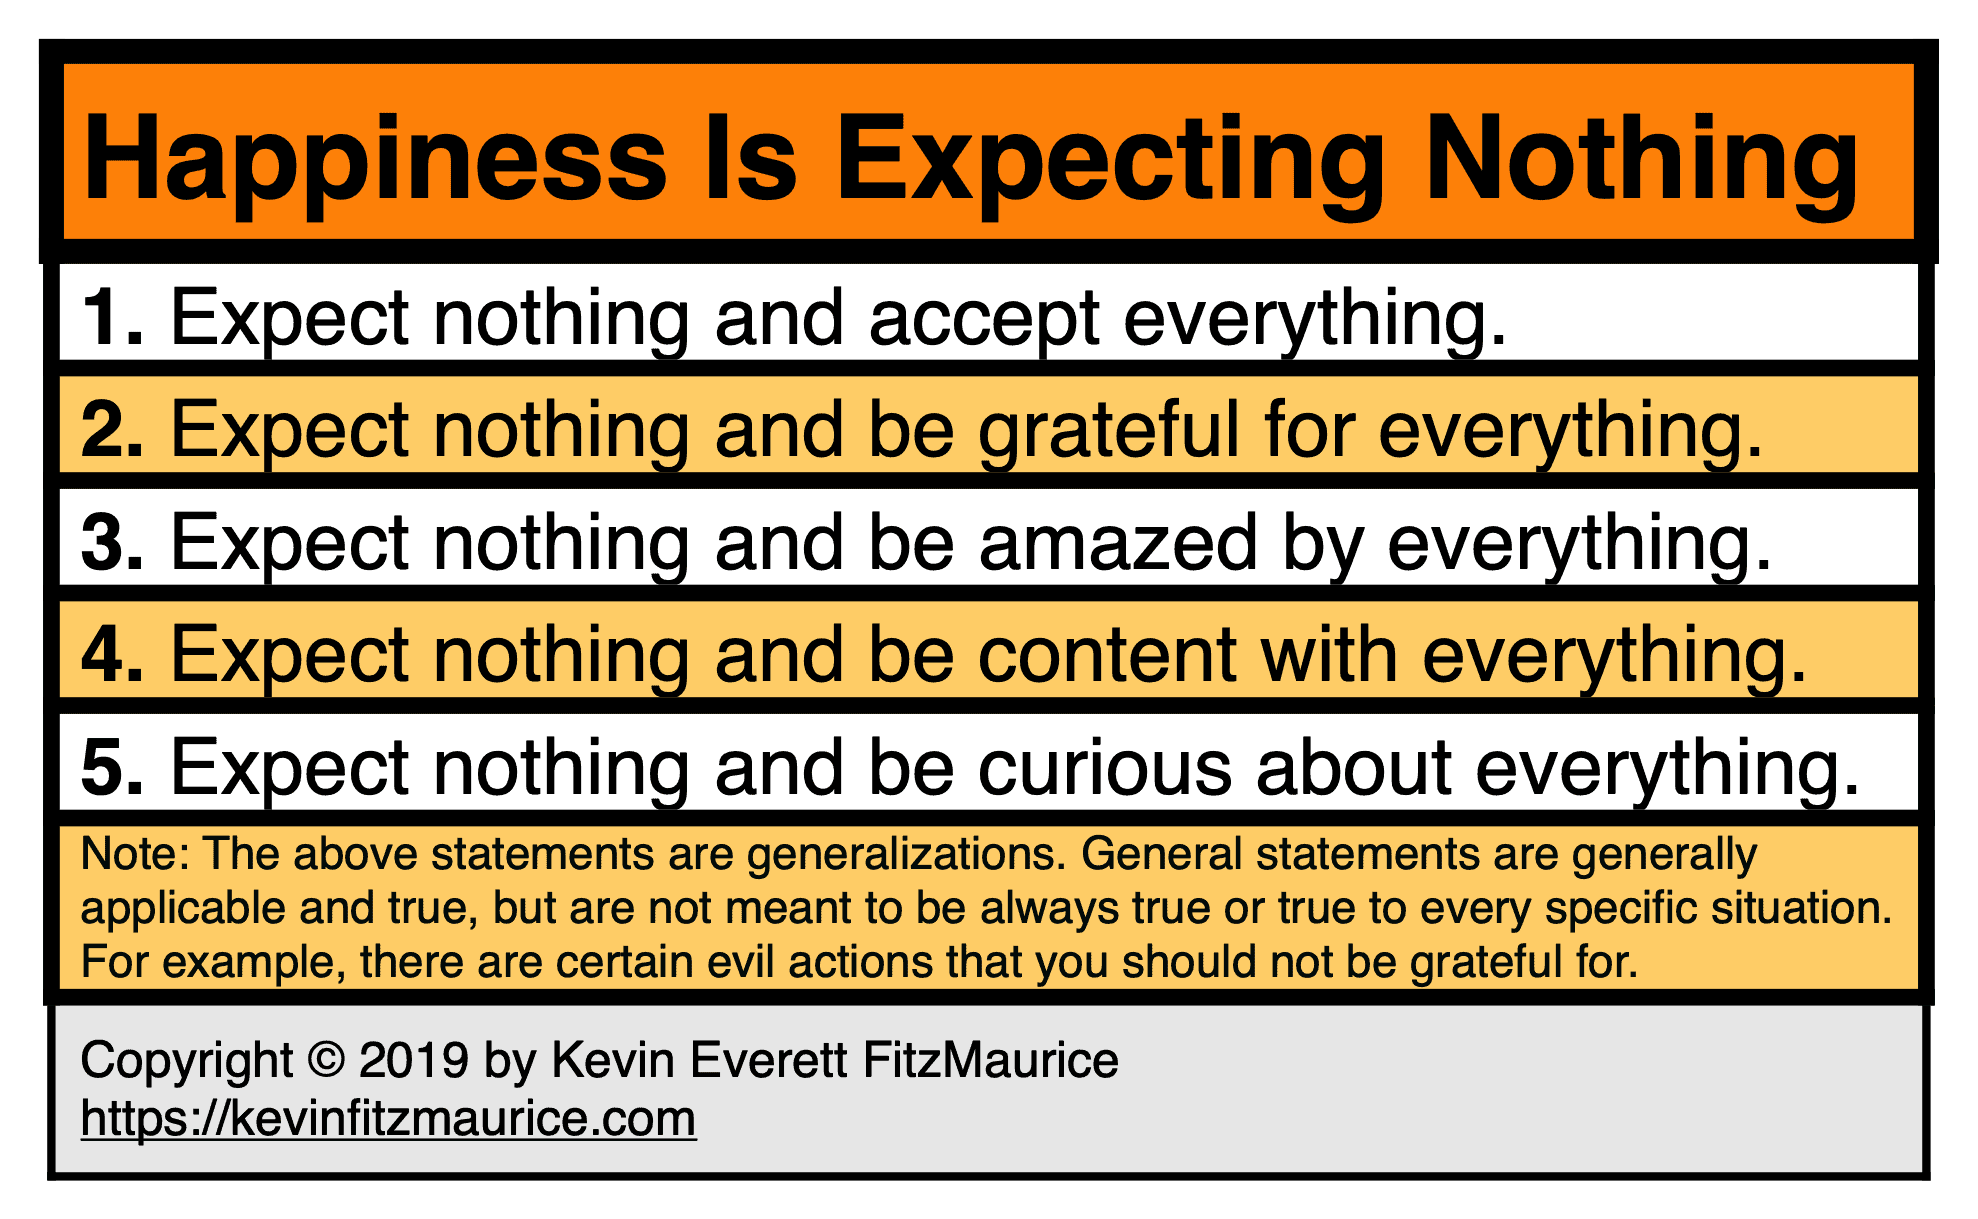 Happiness Is Having No Expectations